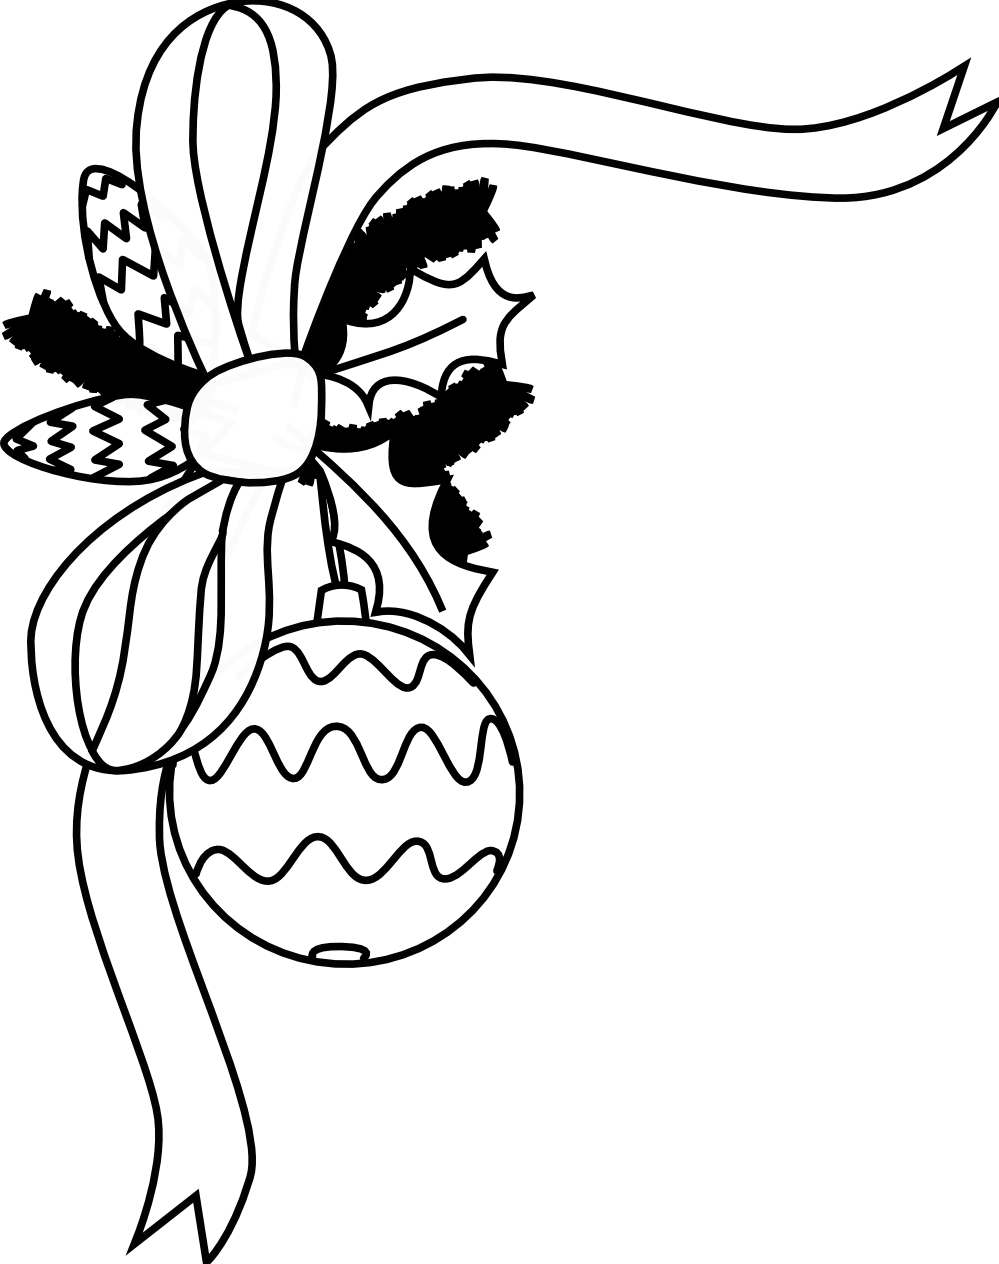 Christmas ornament black and white - Ornament 20clipart 20black 20and 20white